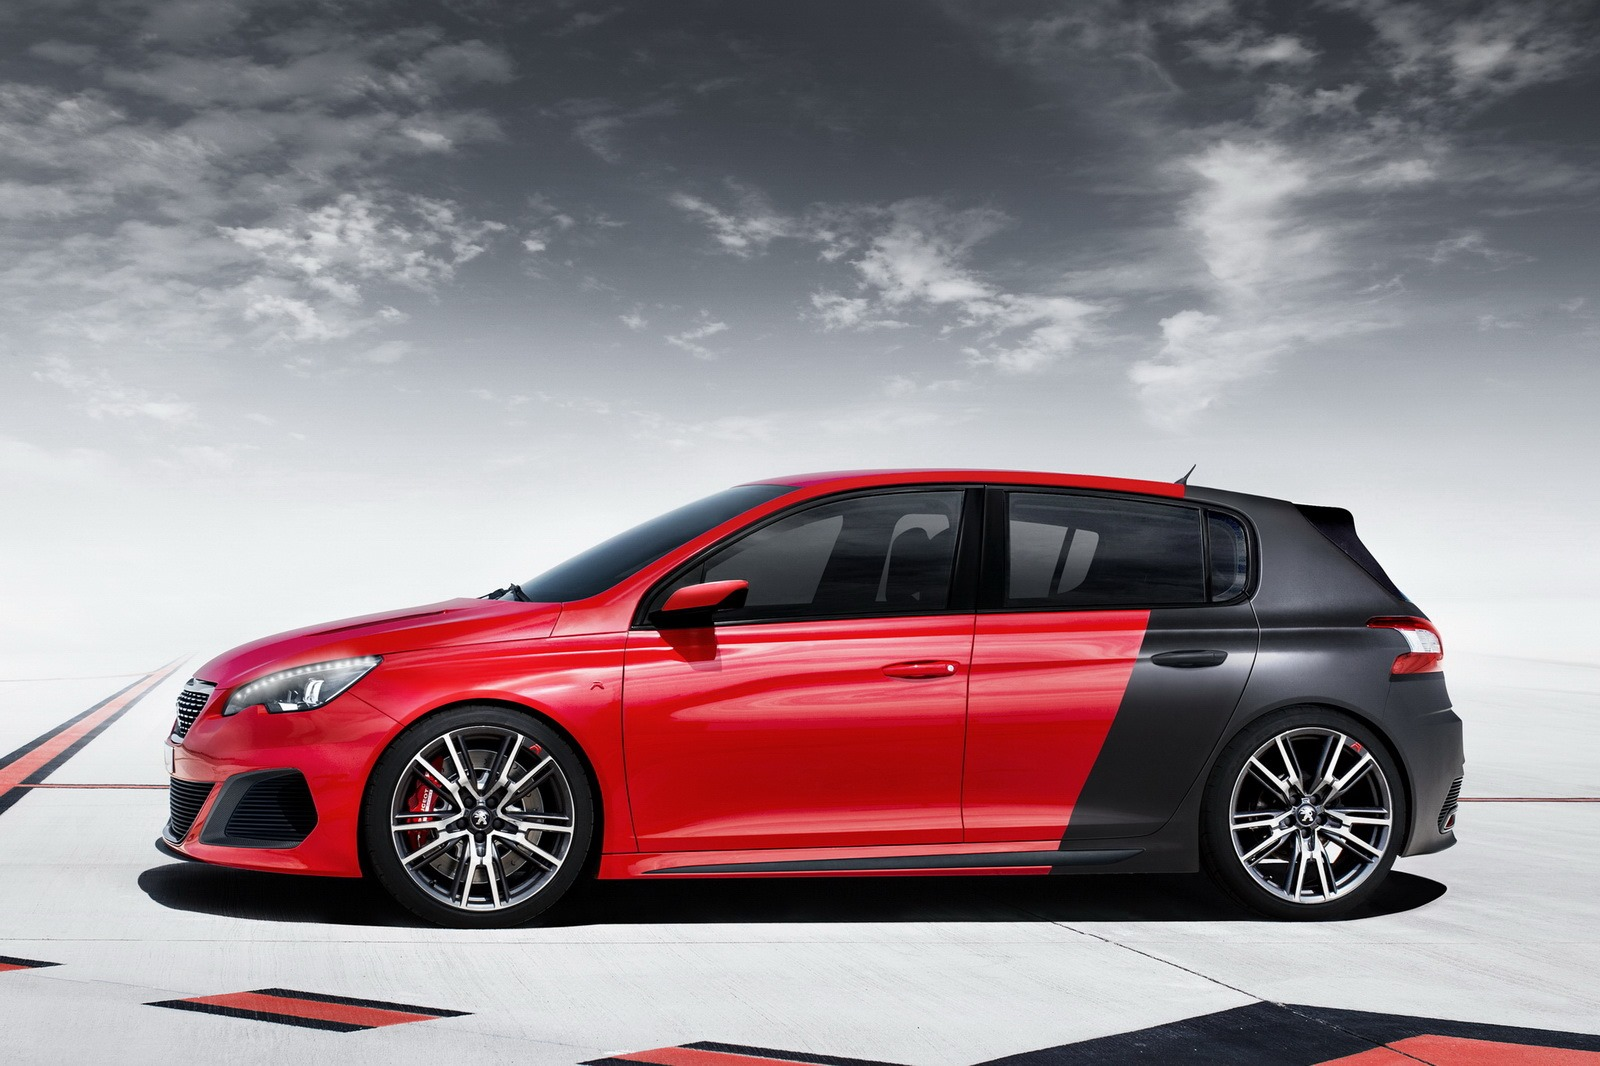 peugeot 308 r um desportivo com muito chilli. Black Bedroom Furniture Sets. Home Design Ideas